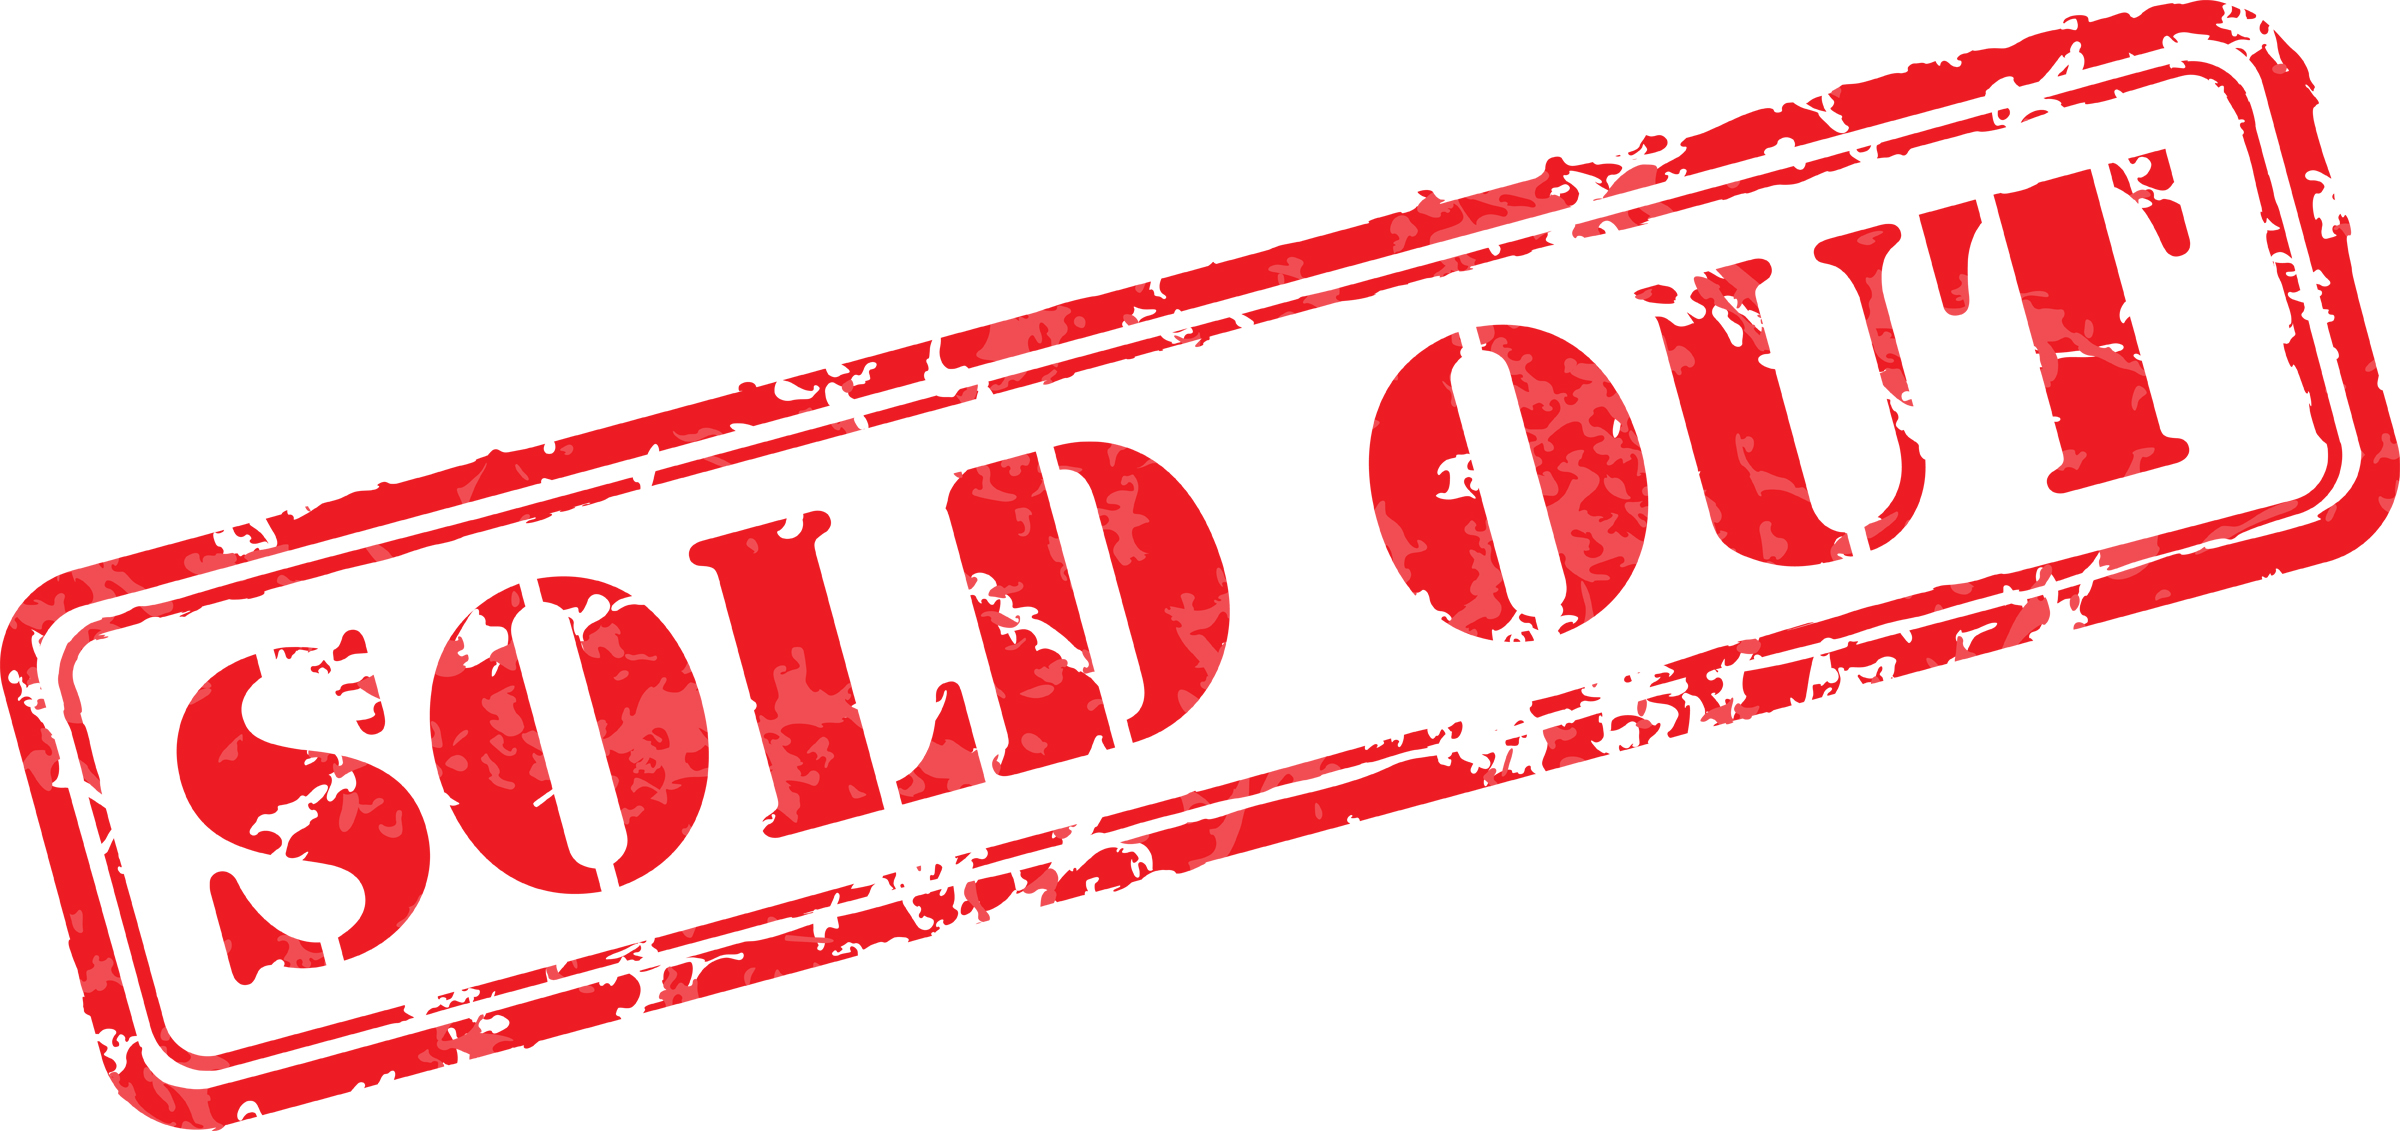 Sold Out Png image #19951 - Sold Out PNG